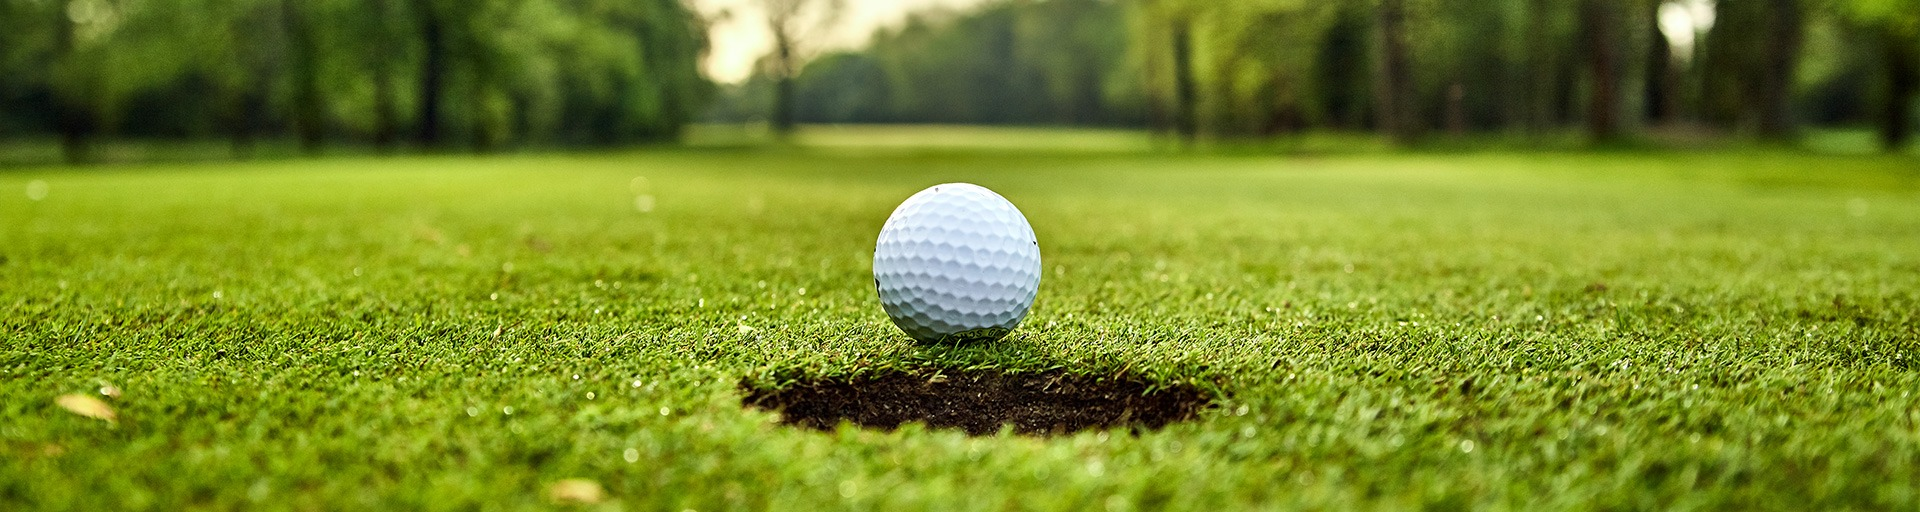 Do You Keep Coming Up Short With Your Putts?